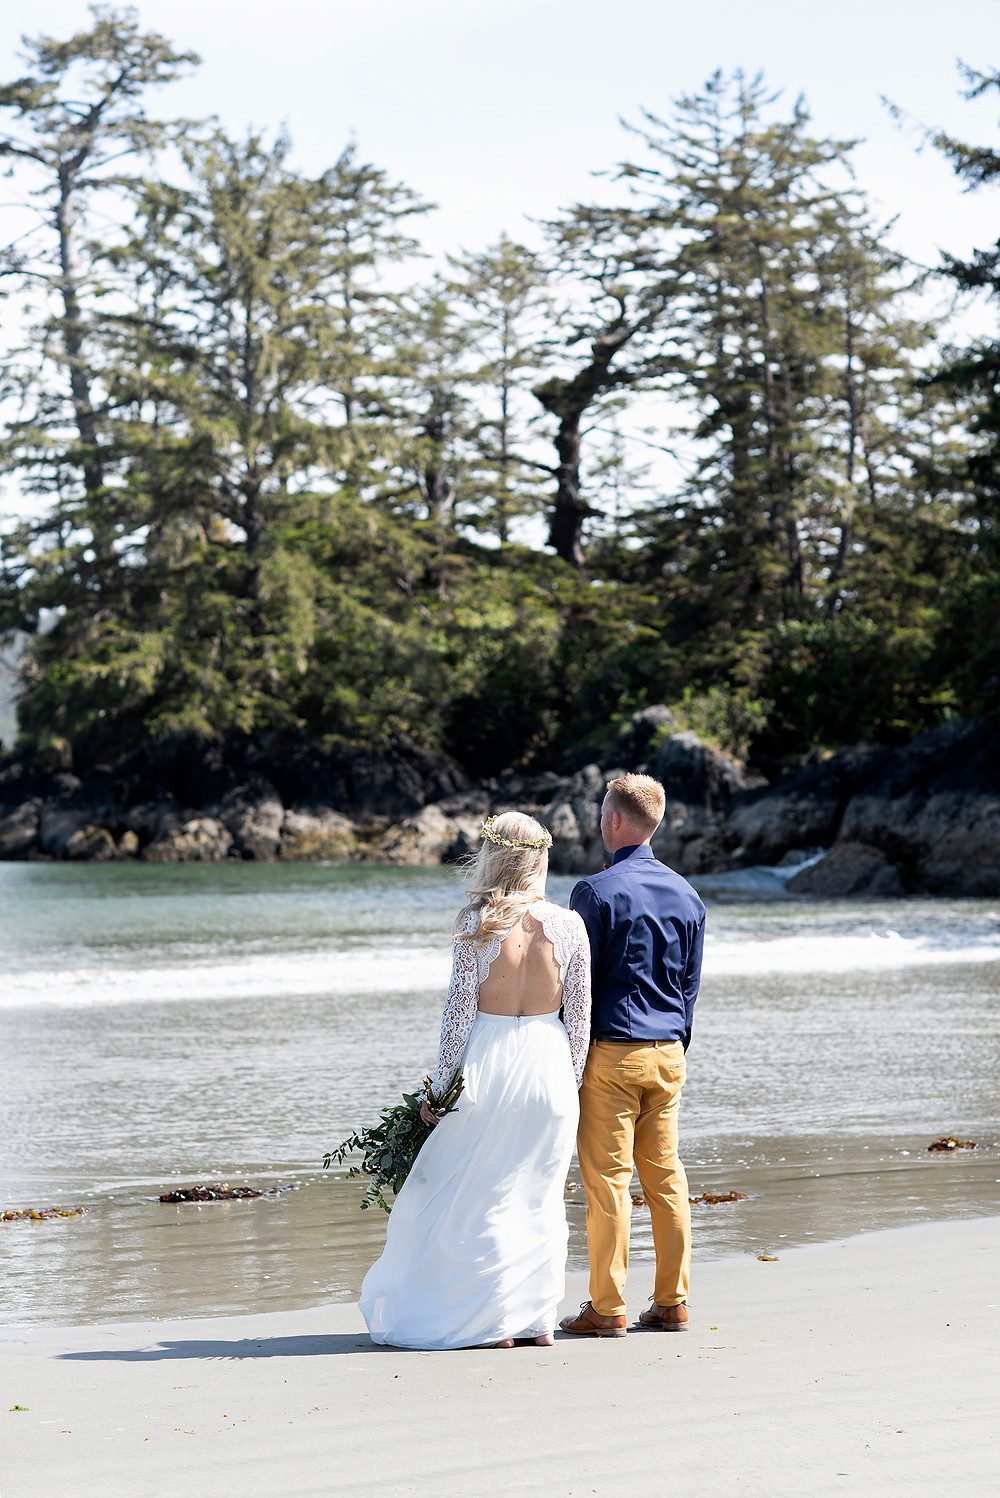 Tofino wedding photography. Photographed by Kaitlyn Shea